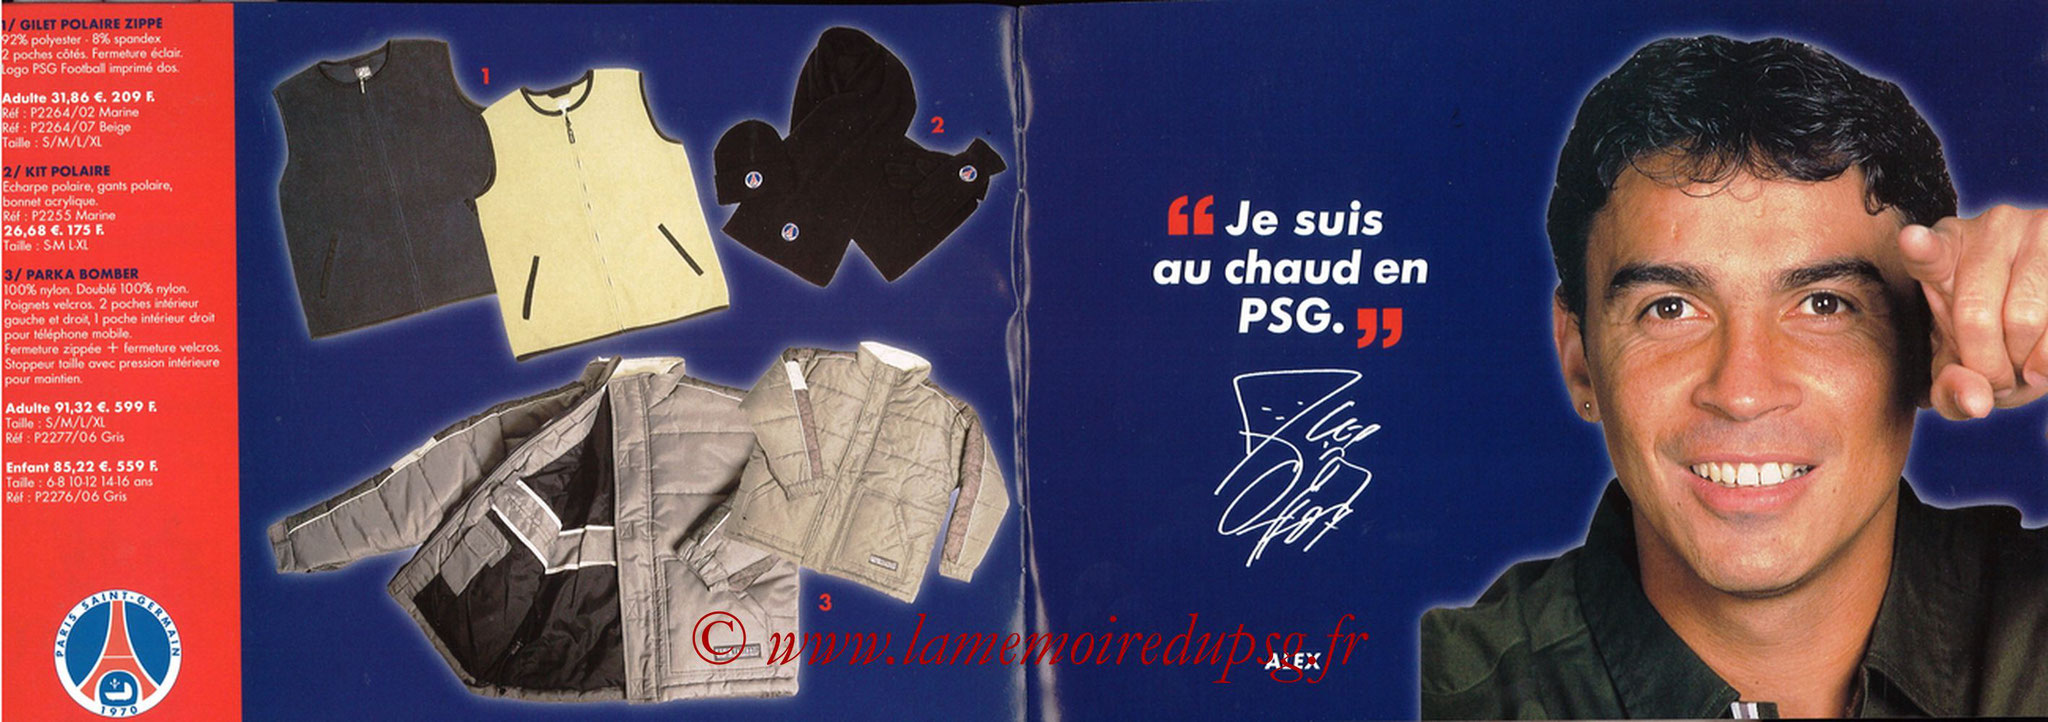 Catalogue PSG - 2001-02 - Noêl - Pages 08 et 09